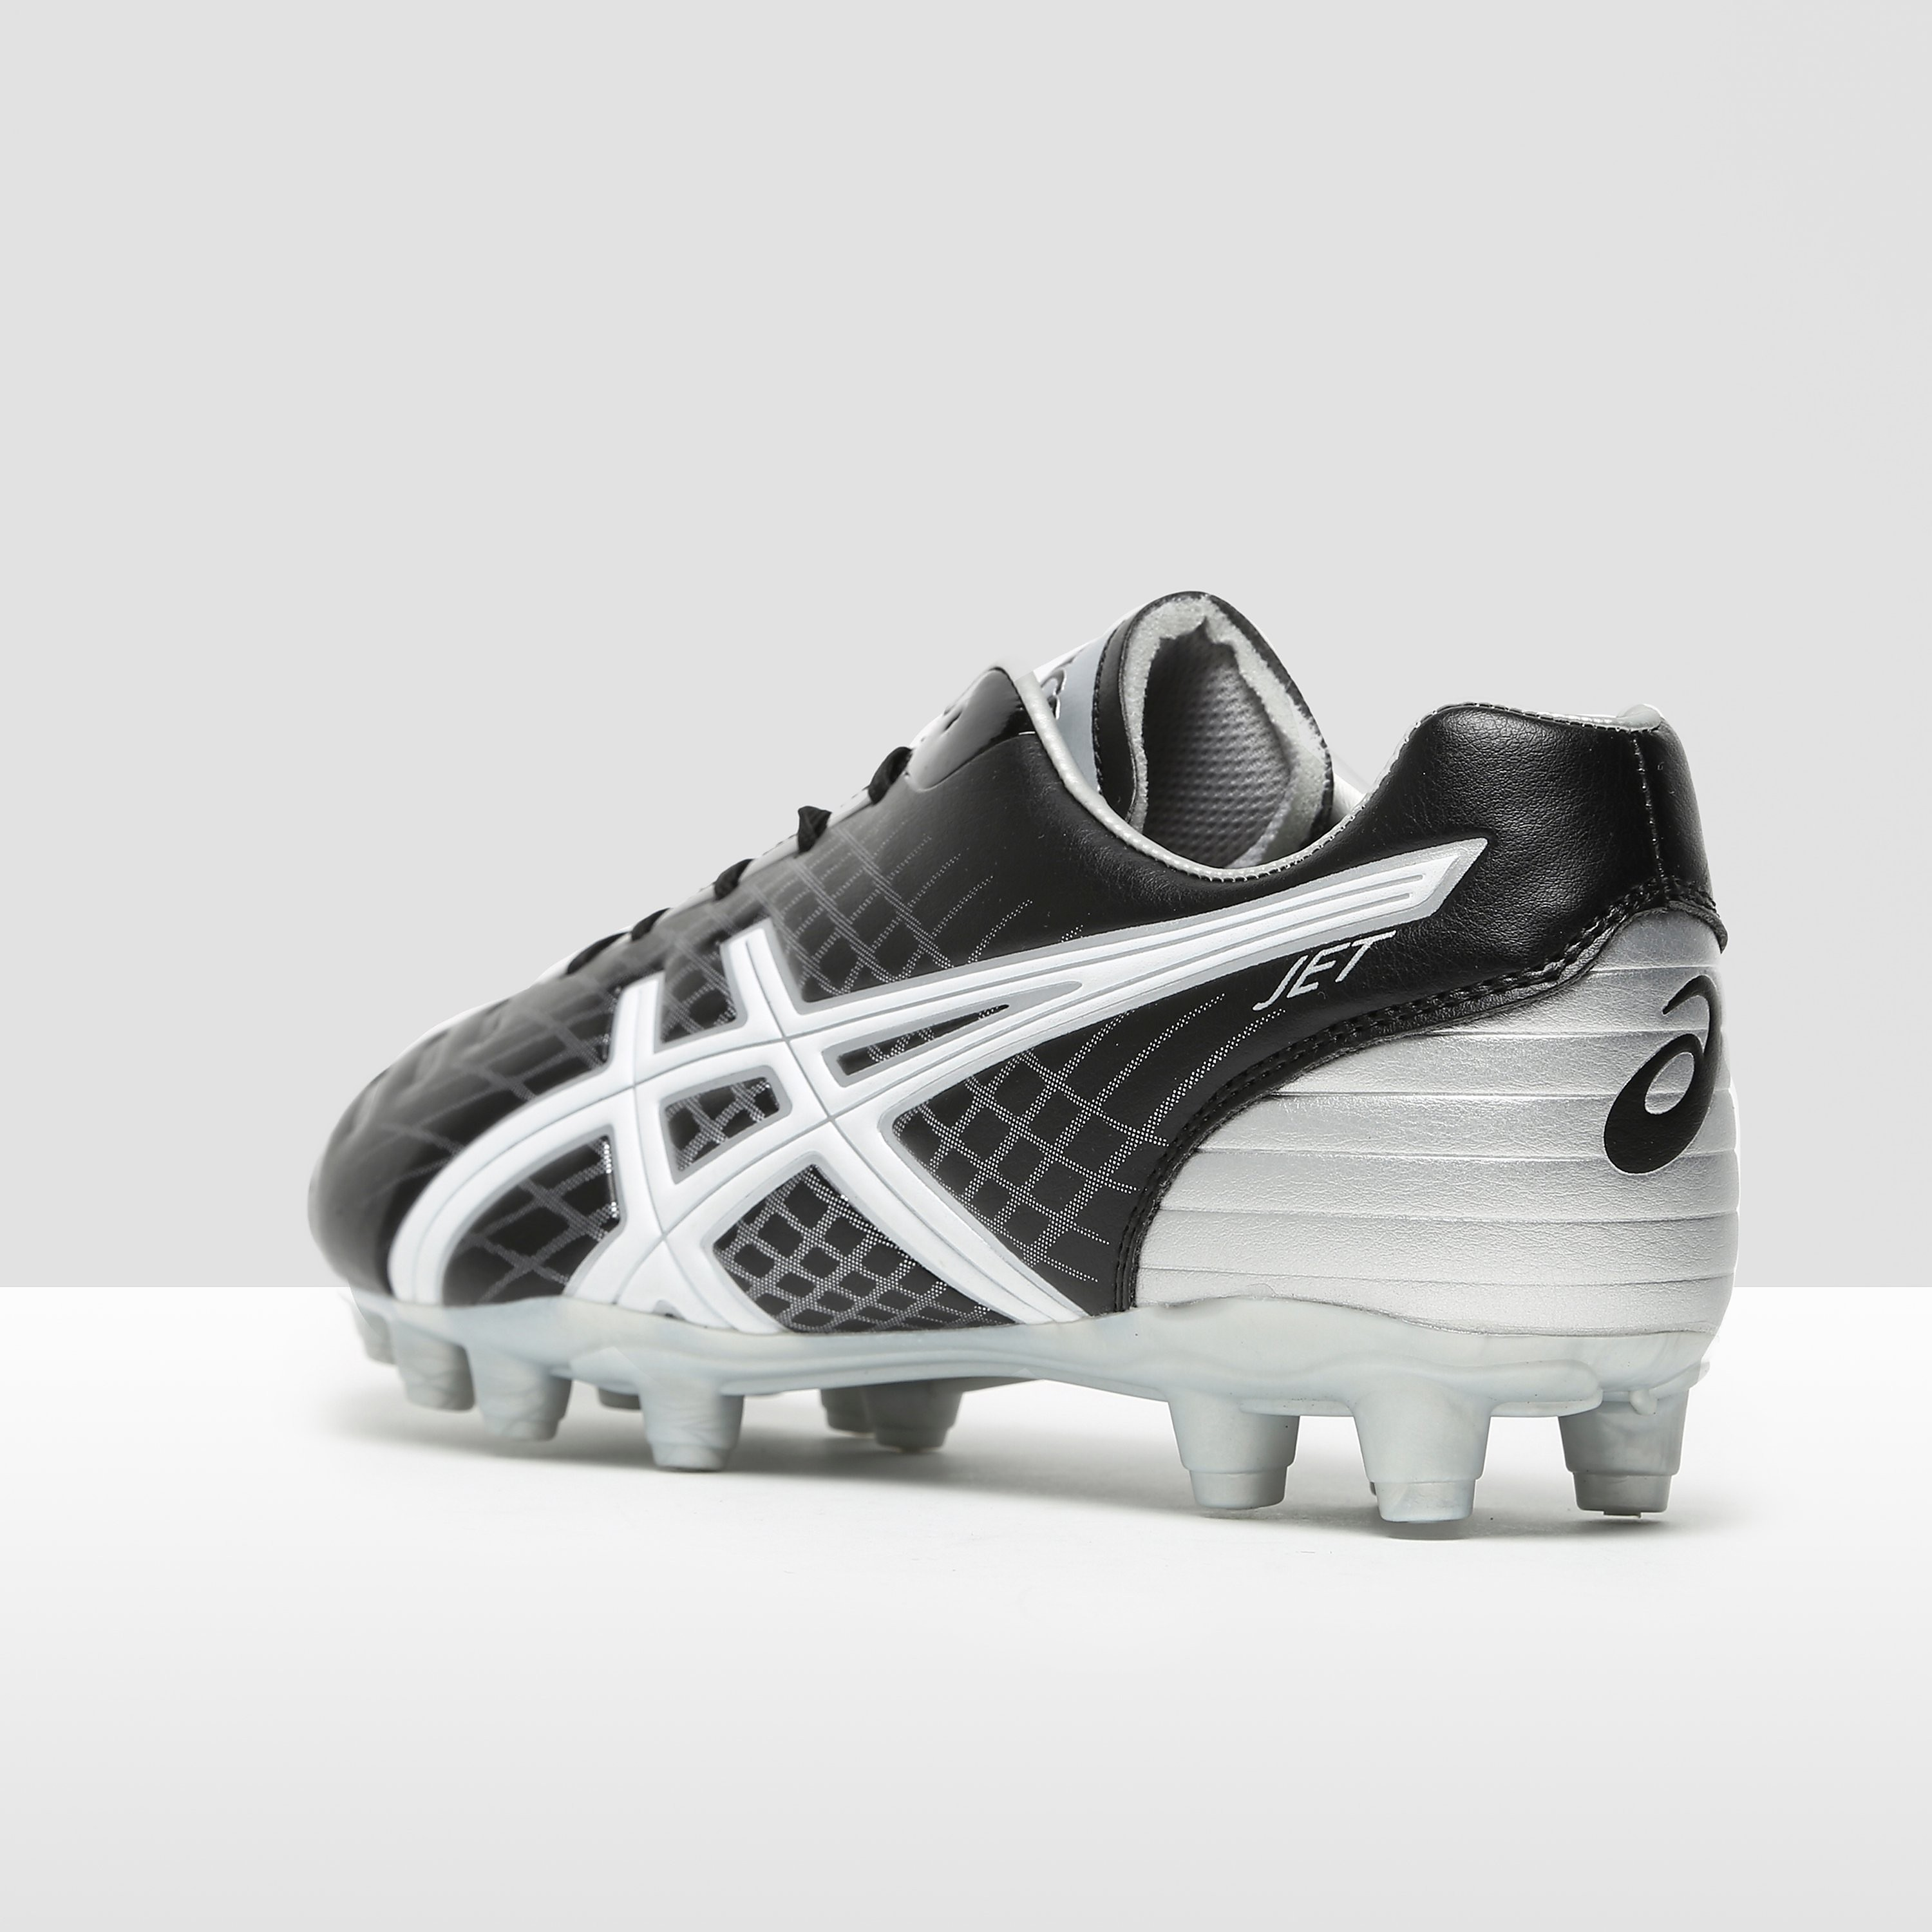 Asics Jet CS Rugby Boots